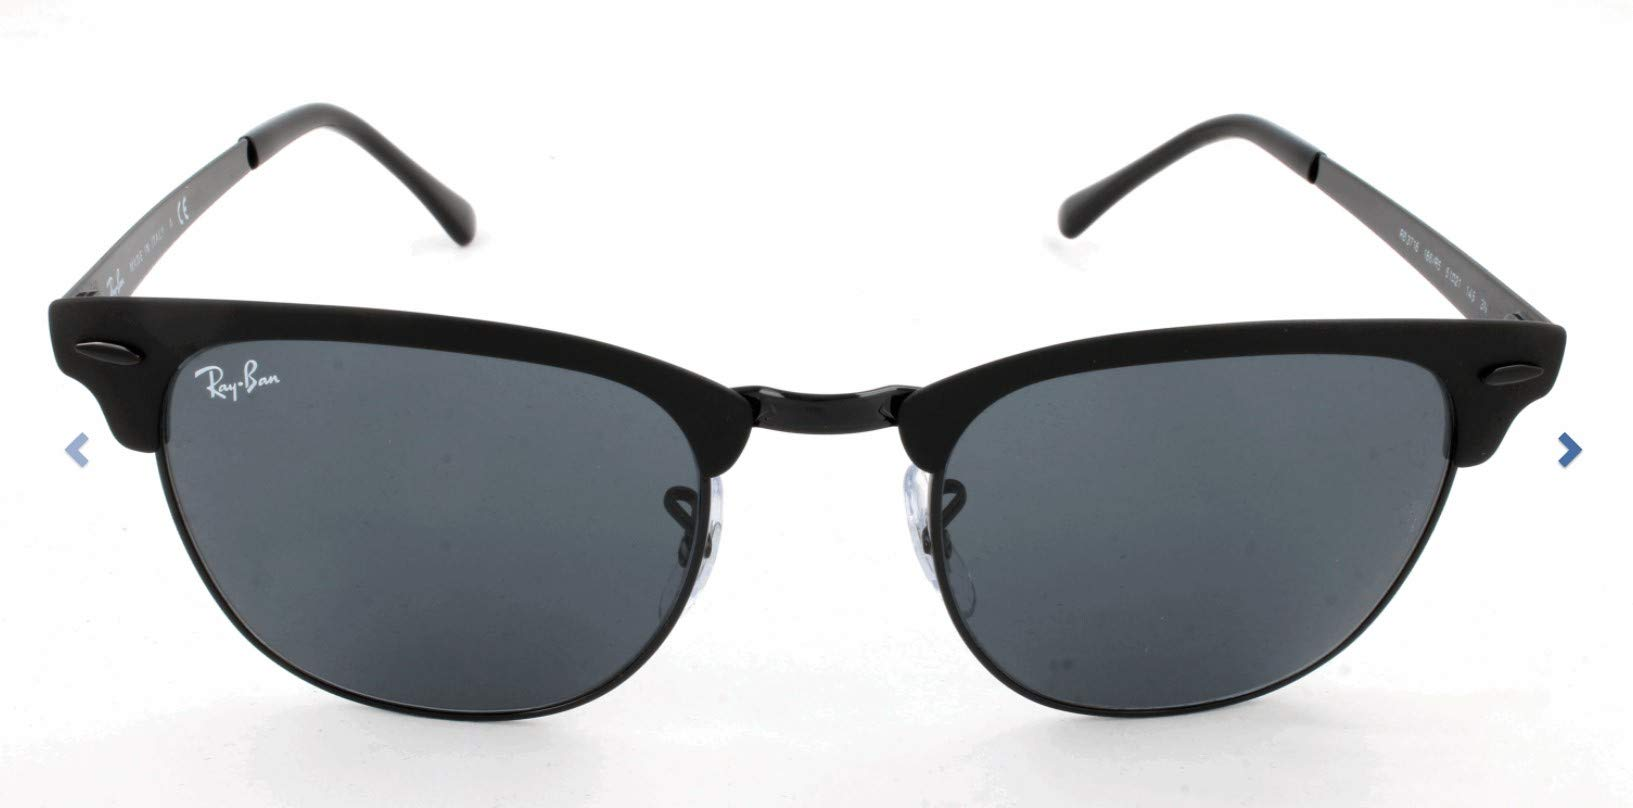 RAY-BAN RB3716 Clubmaster Metal Square Sunglasses, Black On Matte Black/Blue, 51 mm by RAY-BAN